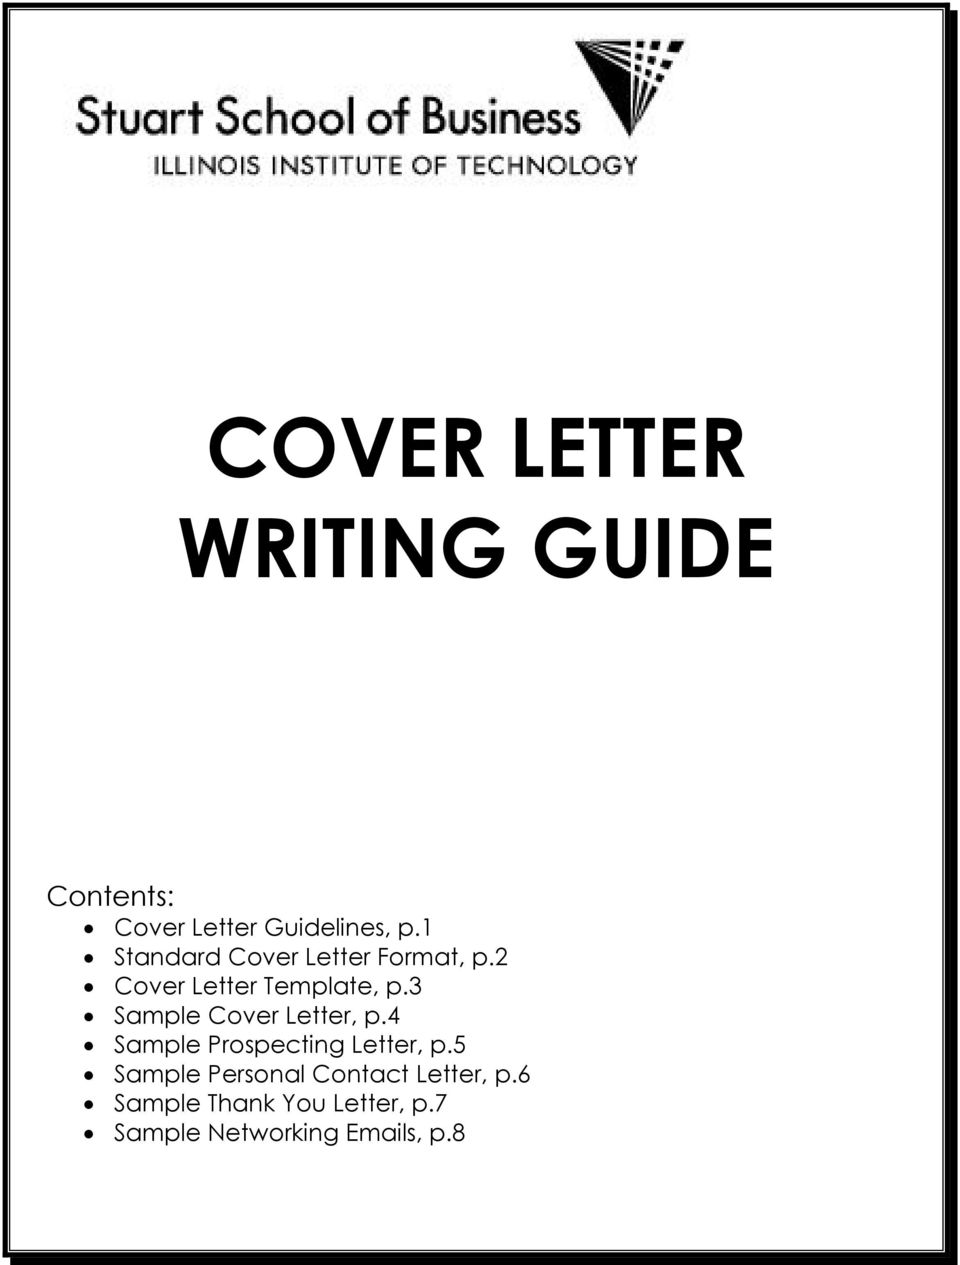 COVER LETTER WRITING GUIDE  PDF